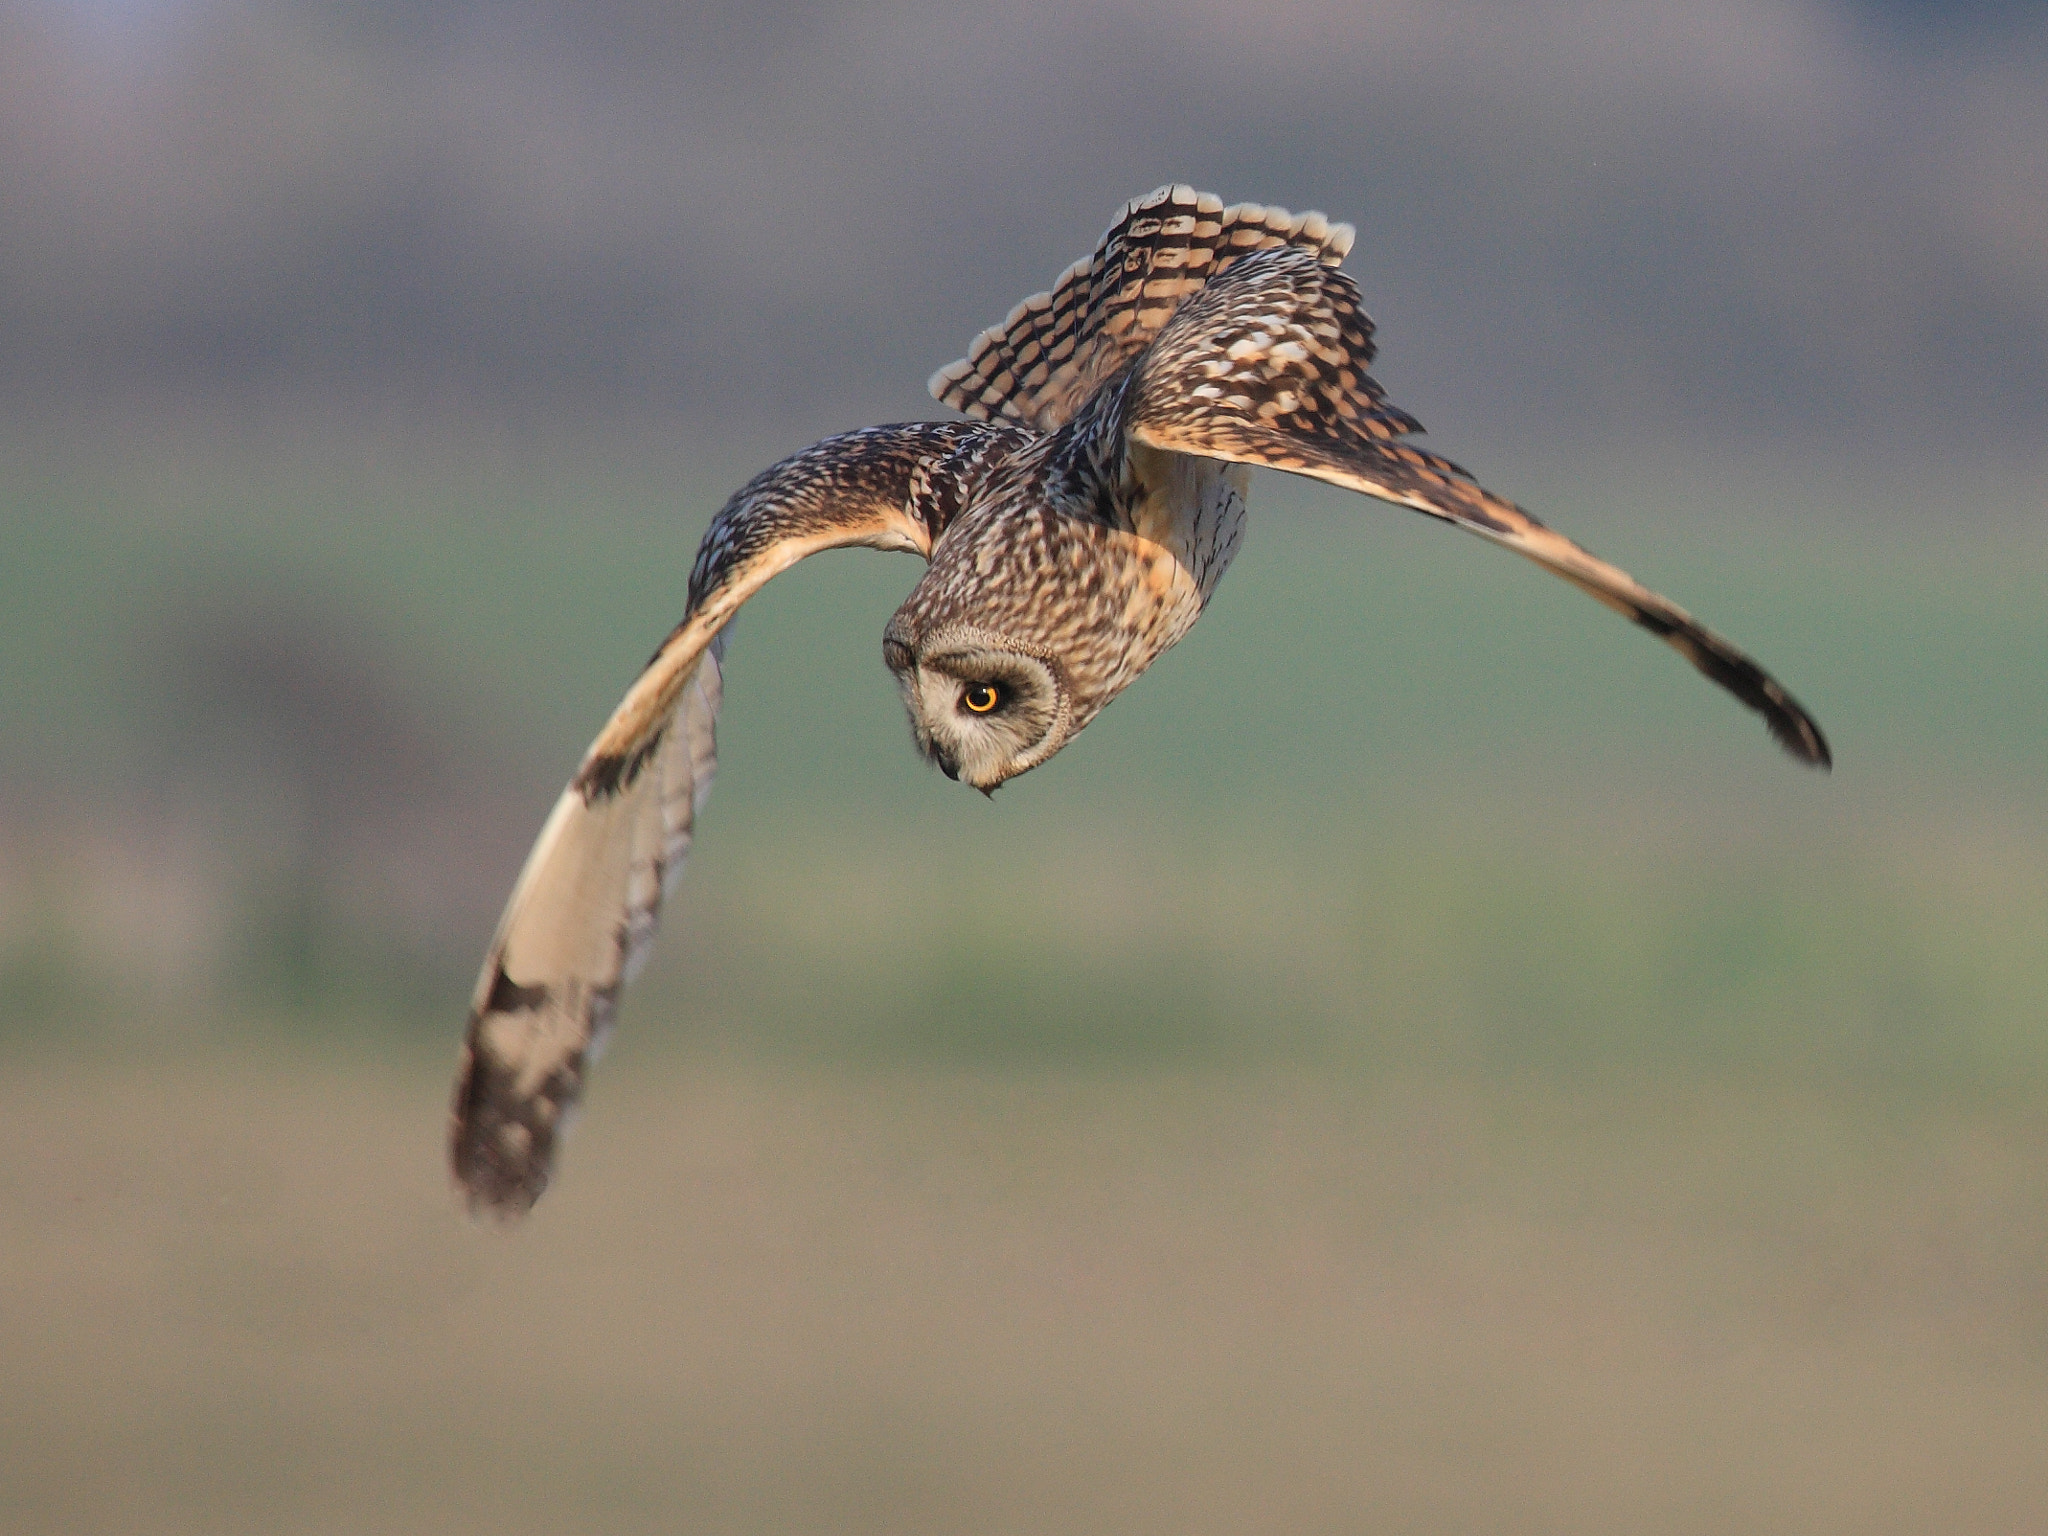 Photograph 'In for the Kill' by Stuart Shore on 500px